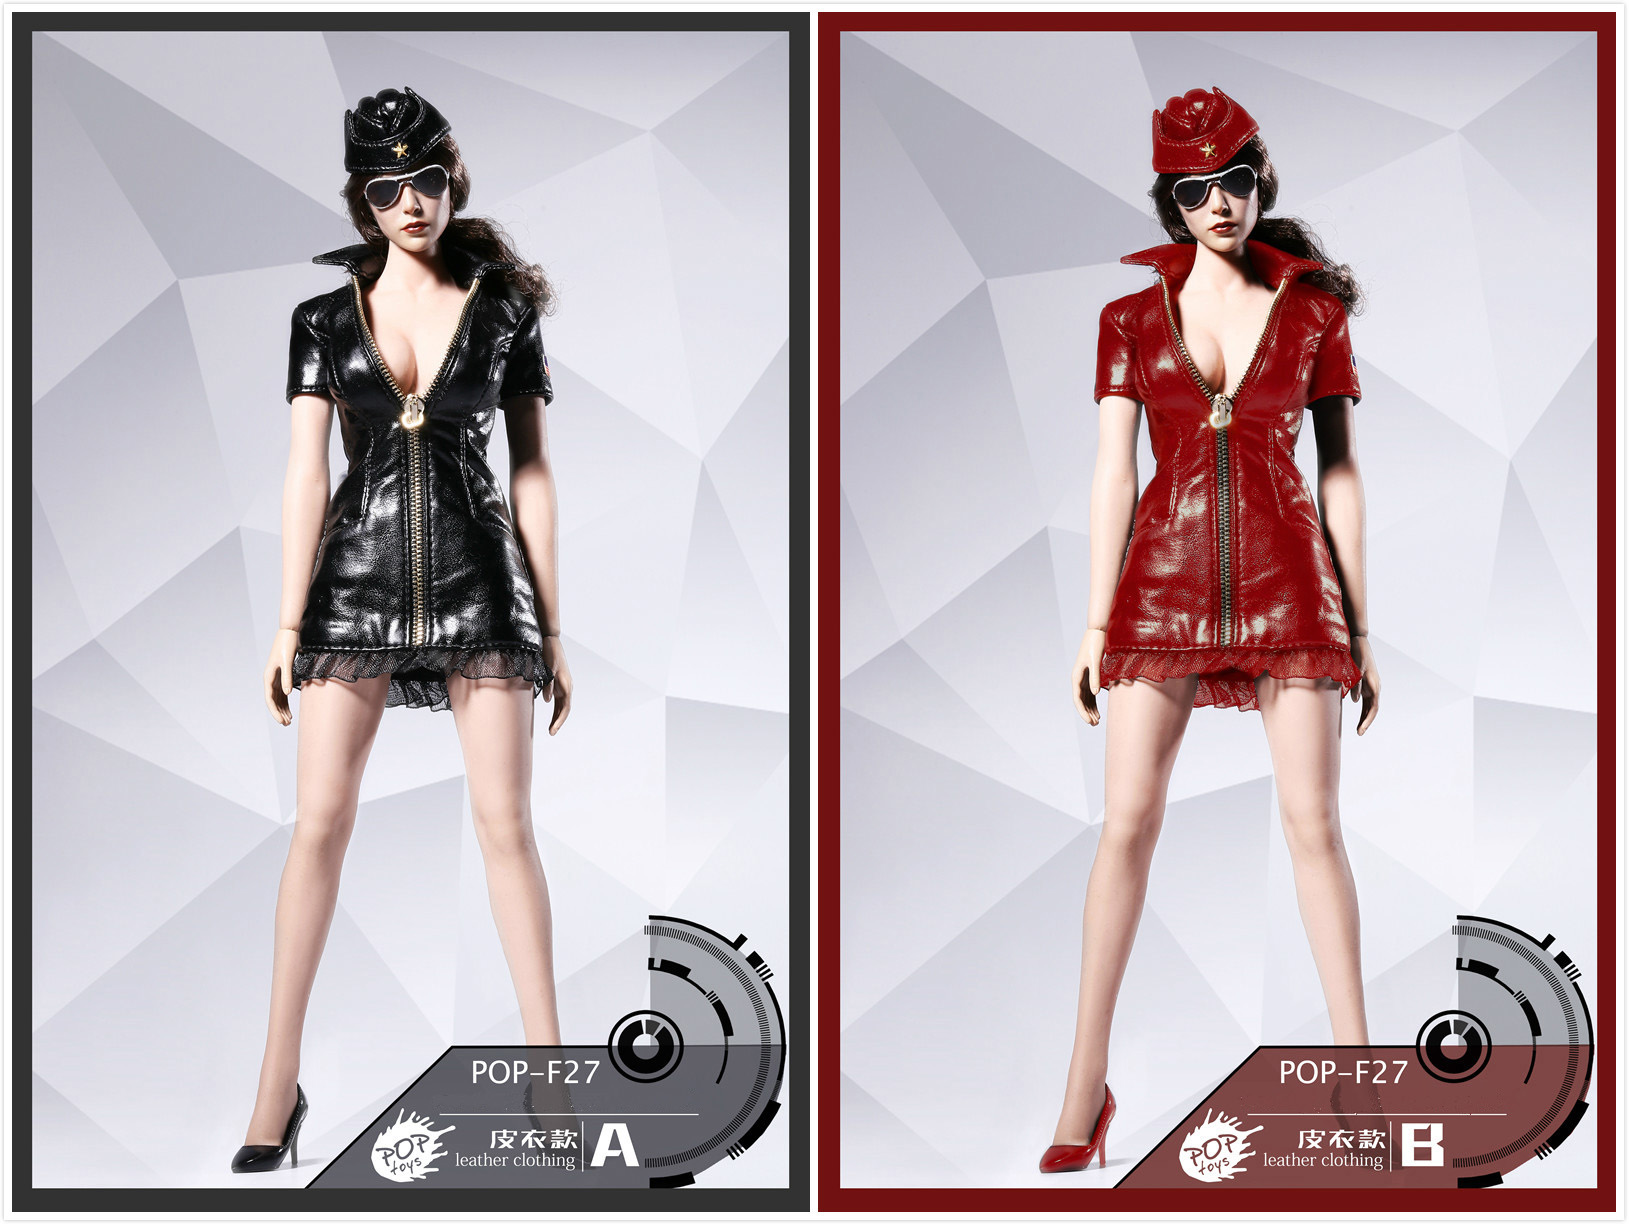 POPTOYS F27 Sexy War women suit - Leather